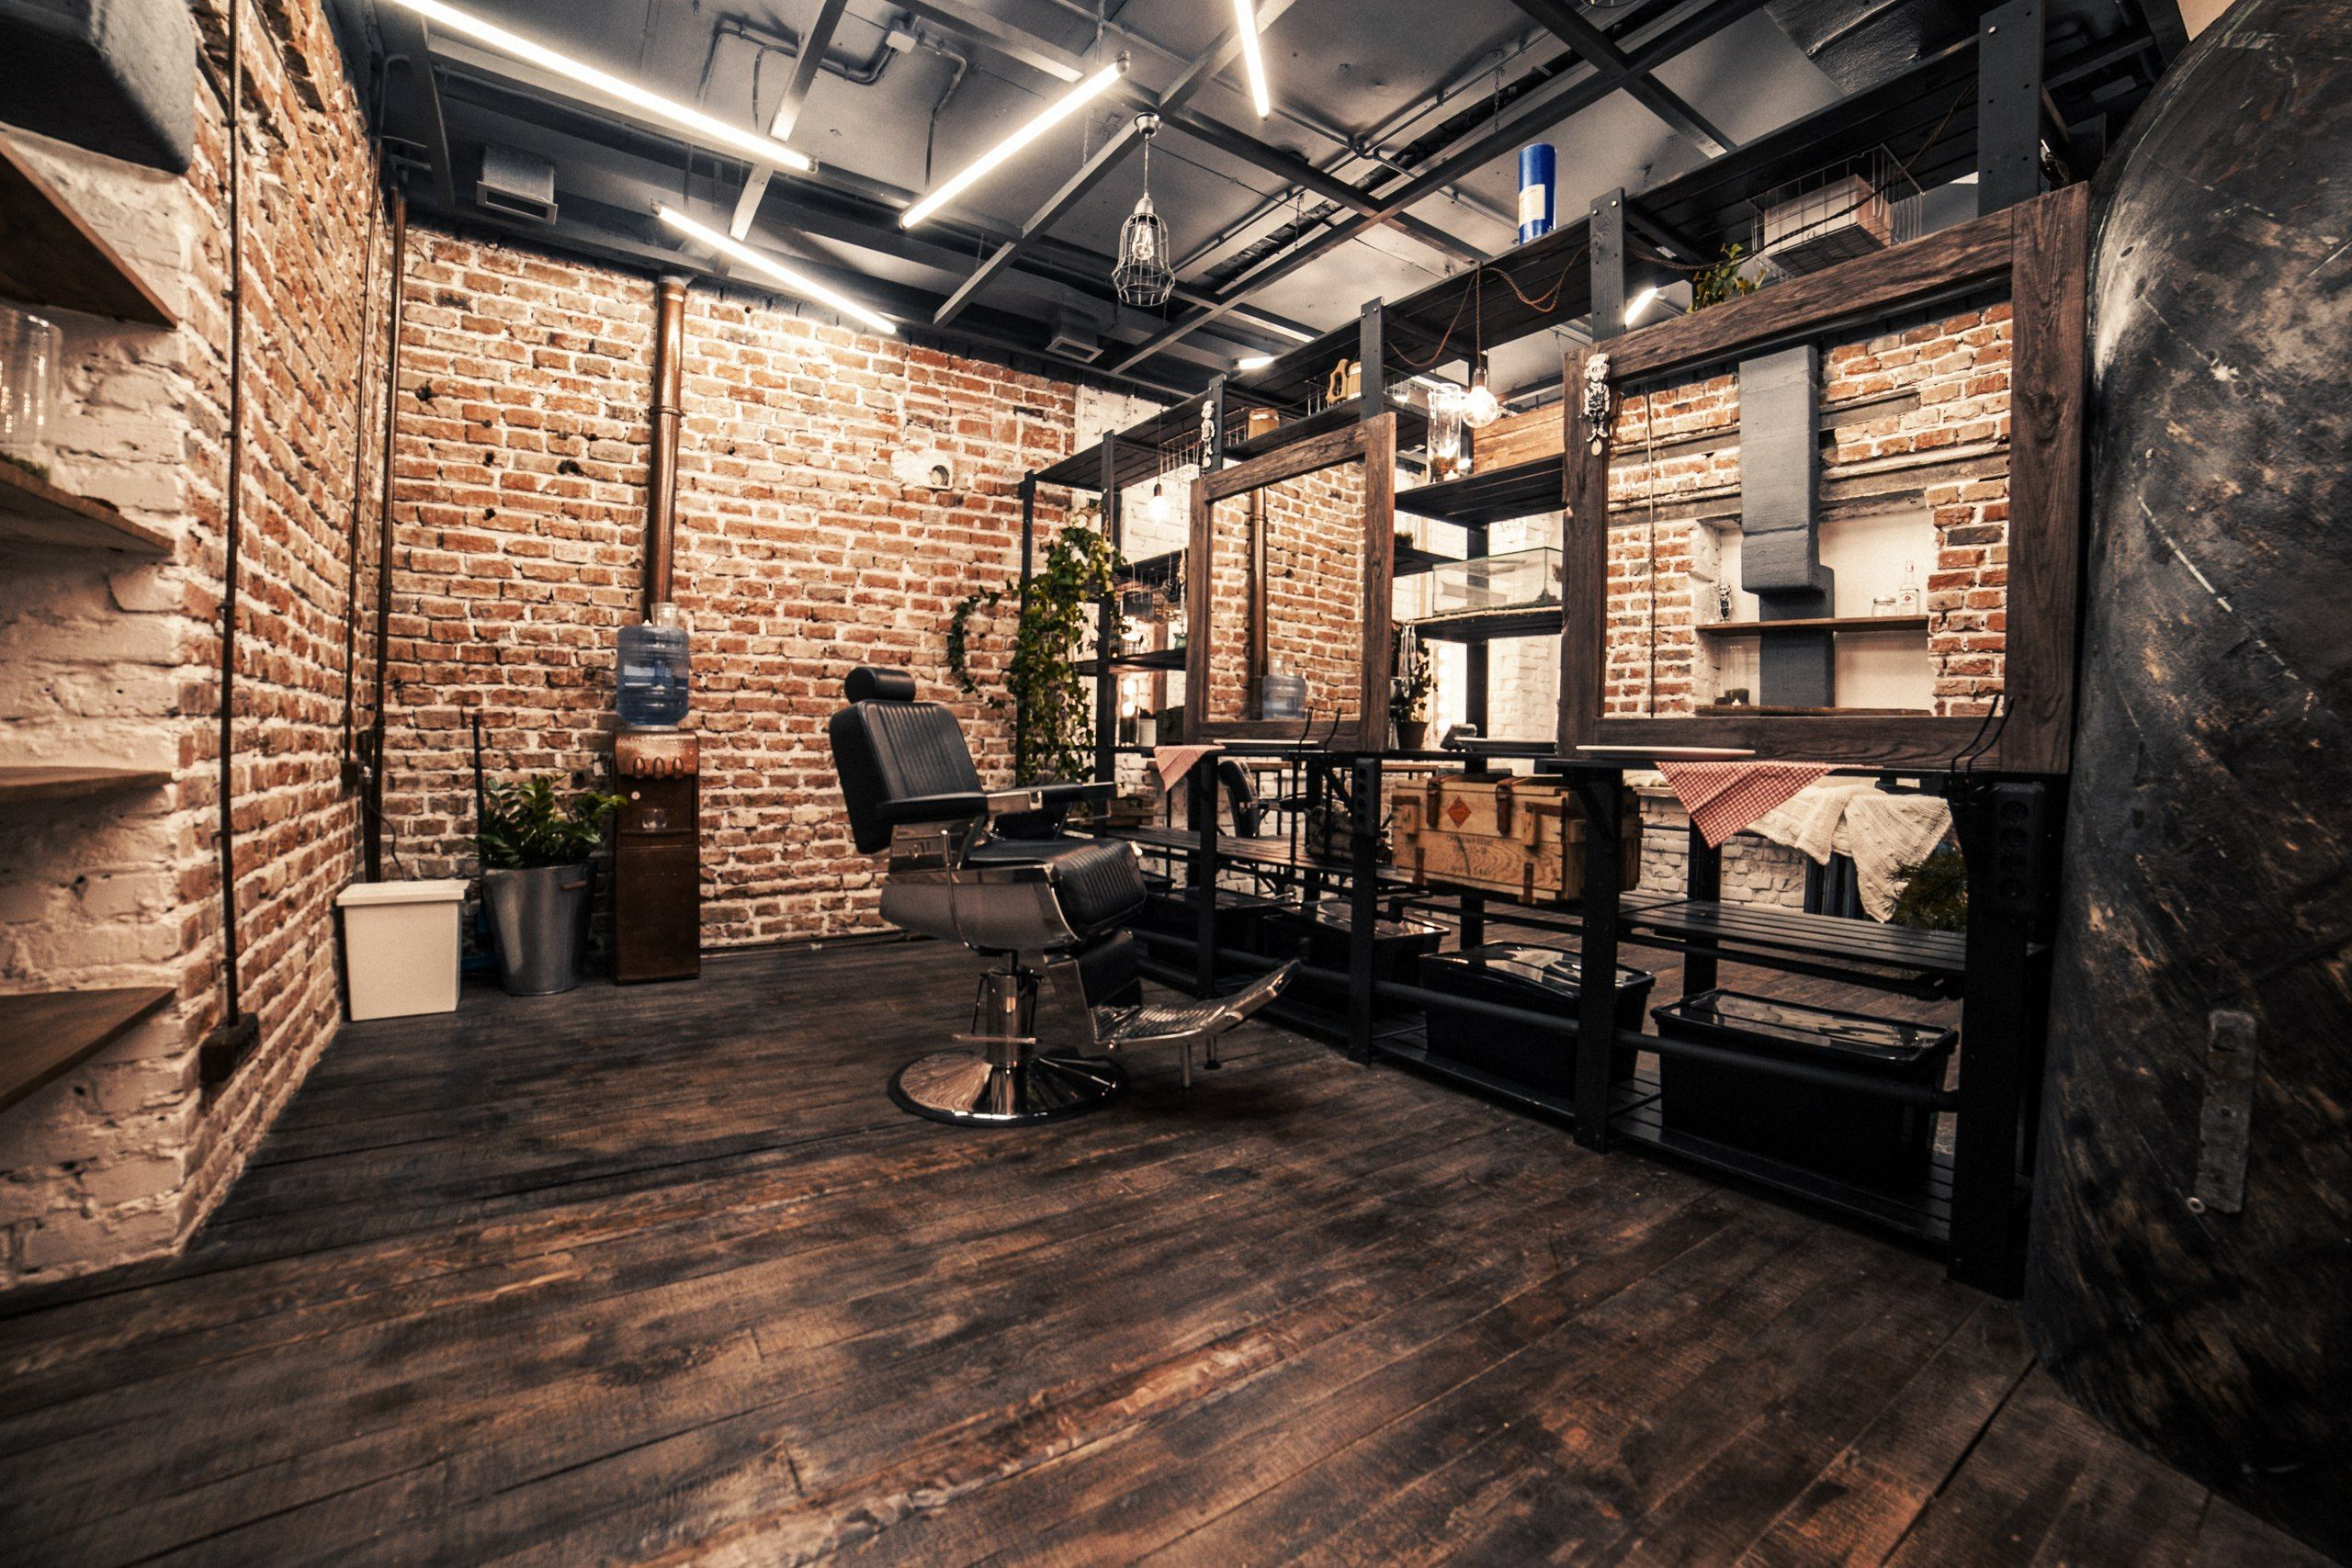 loft interior barbershop beautyshop style haircuts wood floor boat brick white red. Black Bedroom Furniture Sets. Home Design Ideas